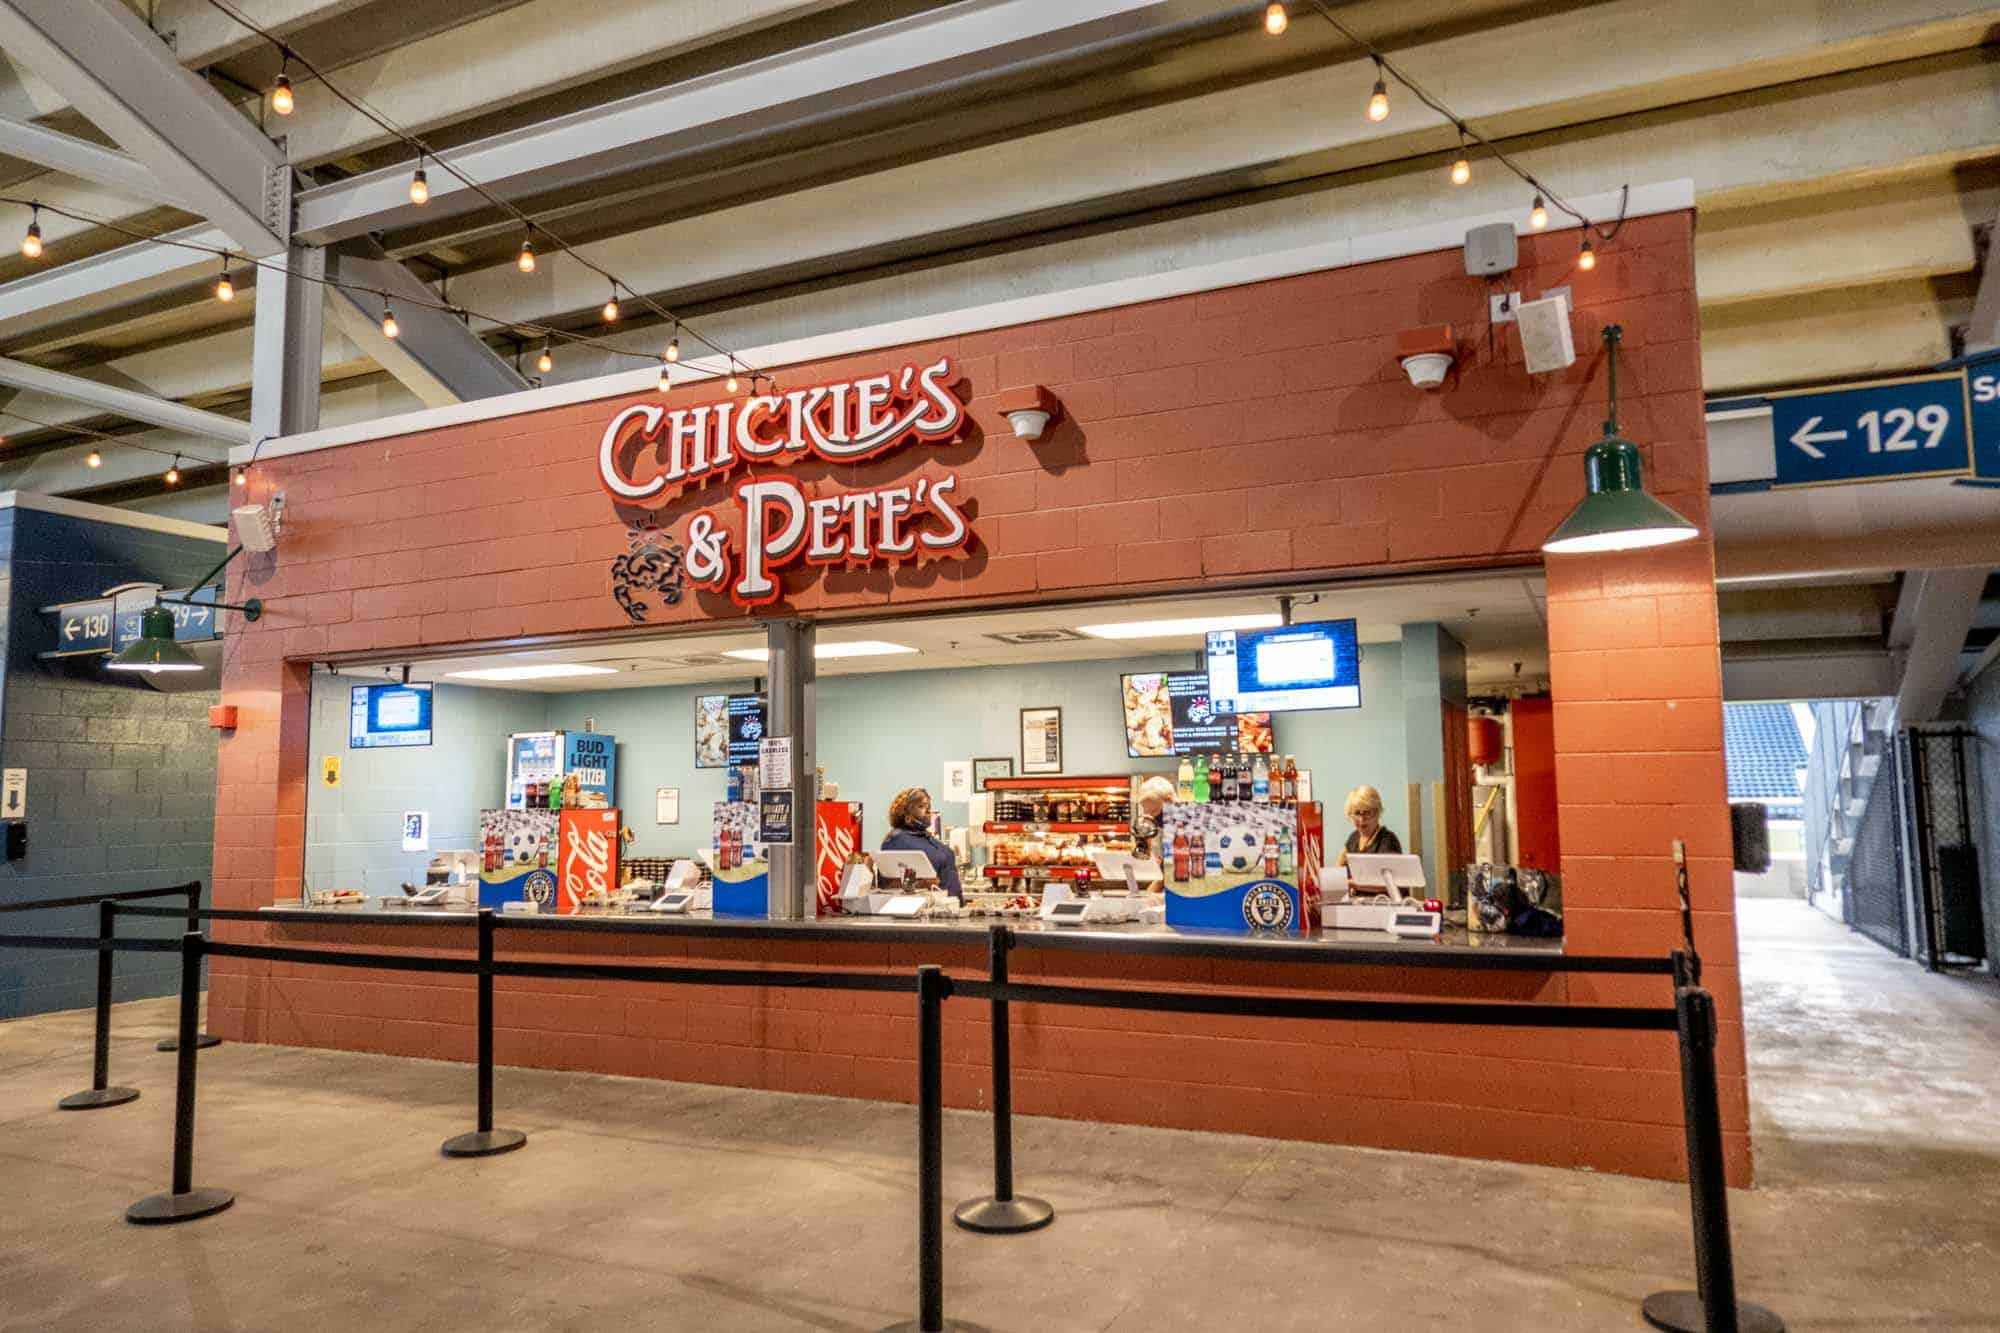 Stall from Chickie's & Pete's